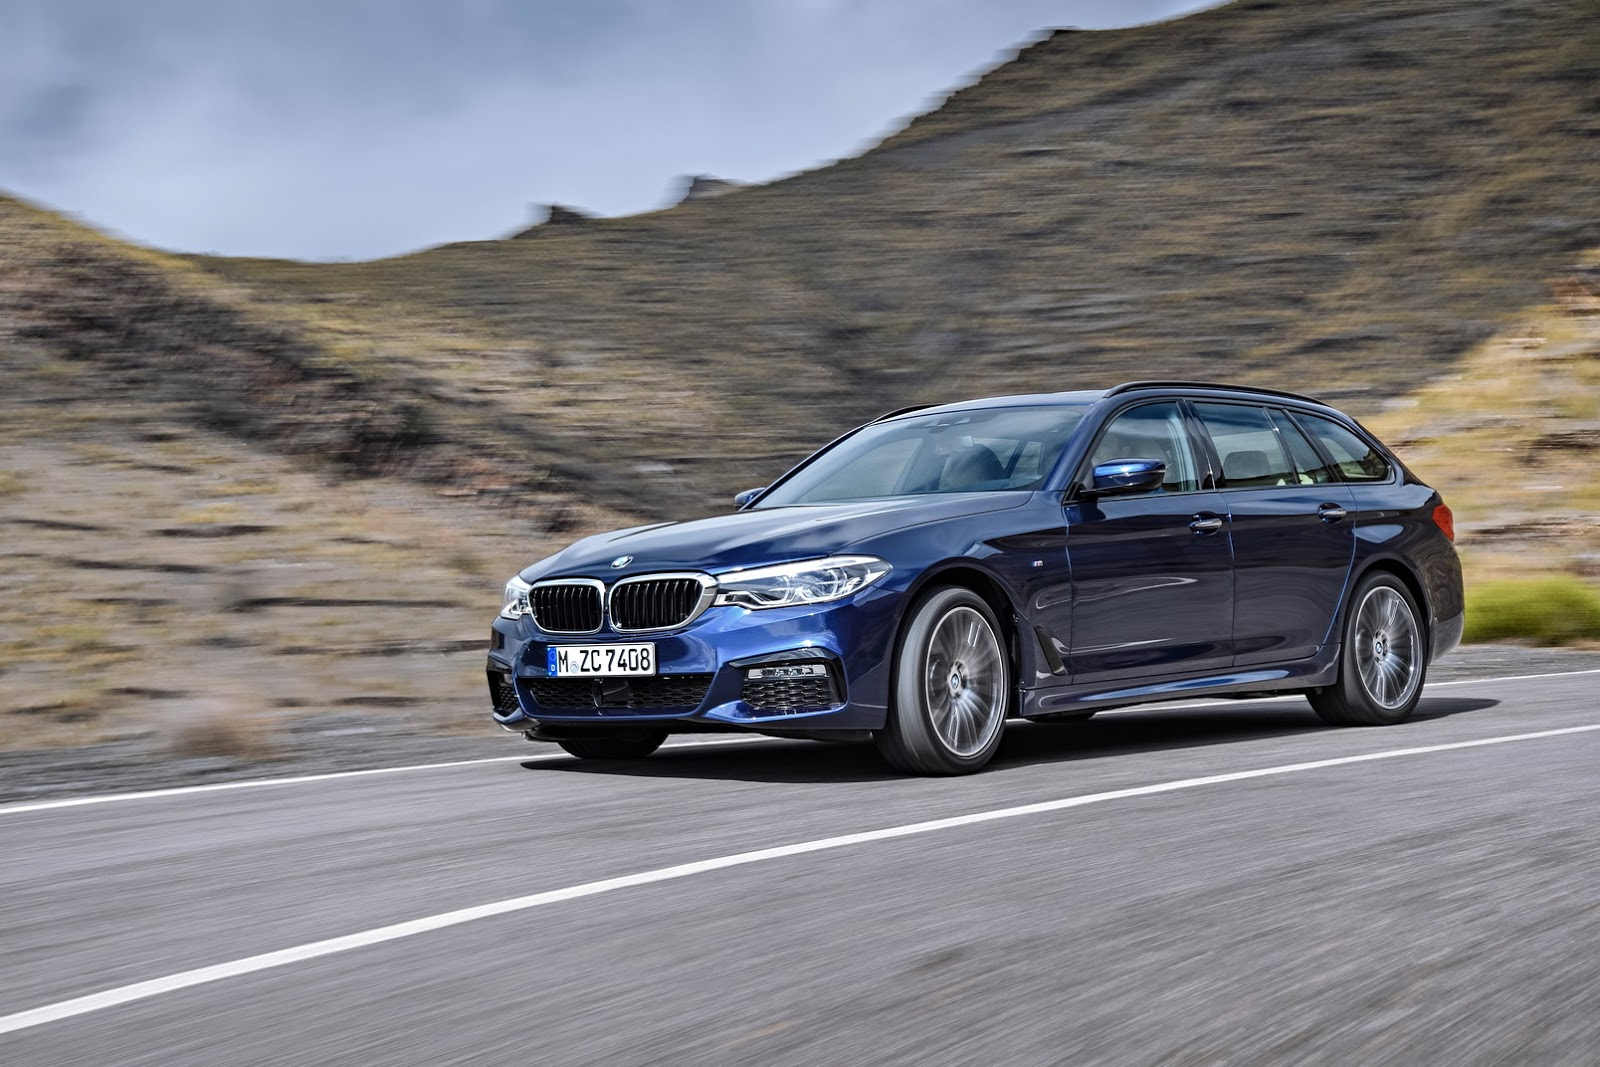 2017 Bmw 5 Series Touring G31 Launch Films Are About